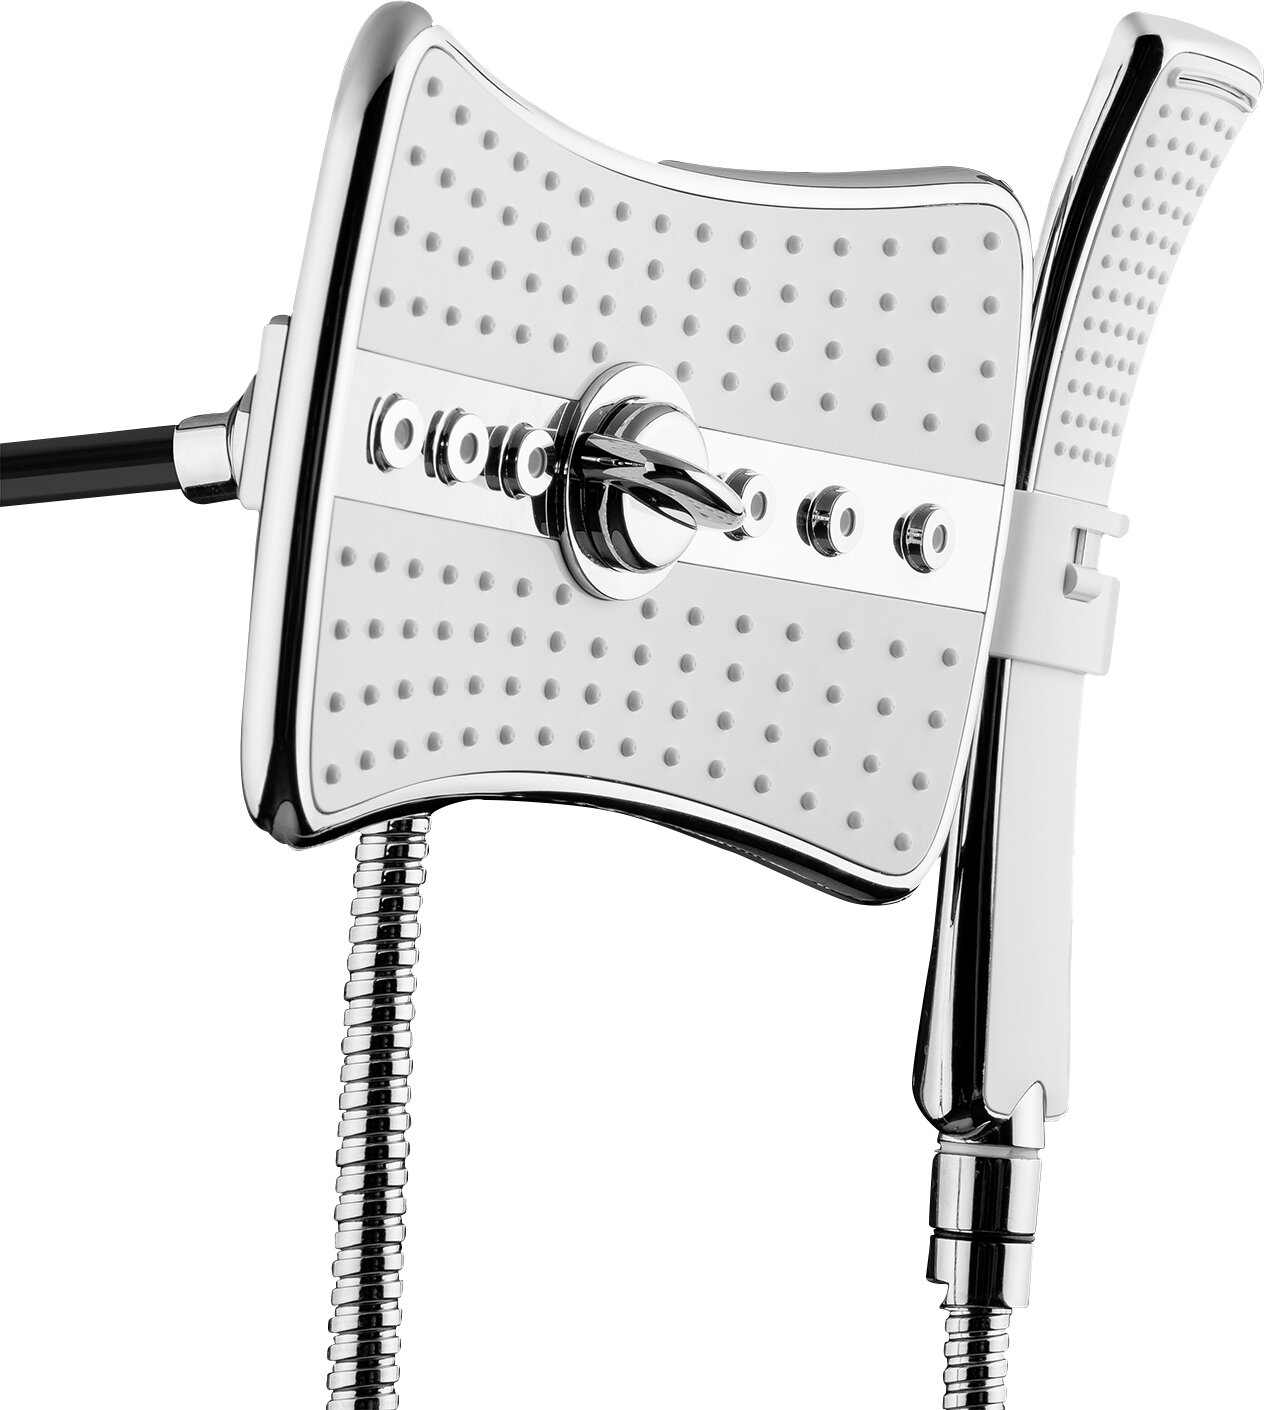 Rainfall 3 Piece Handheld Shower Head Wand Set